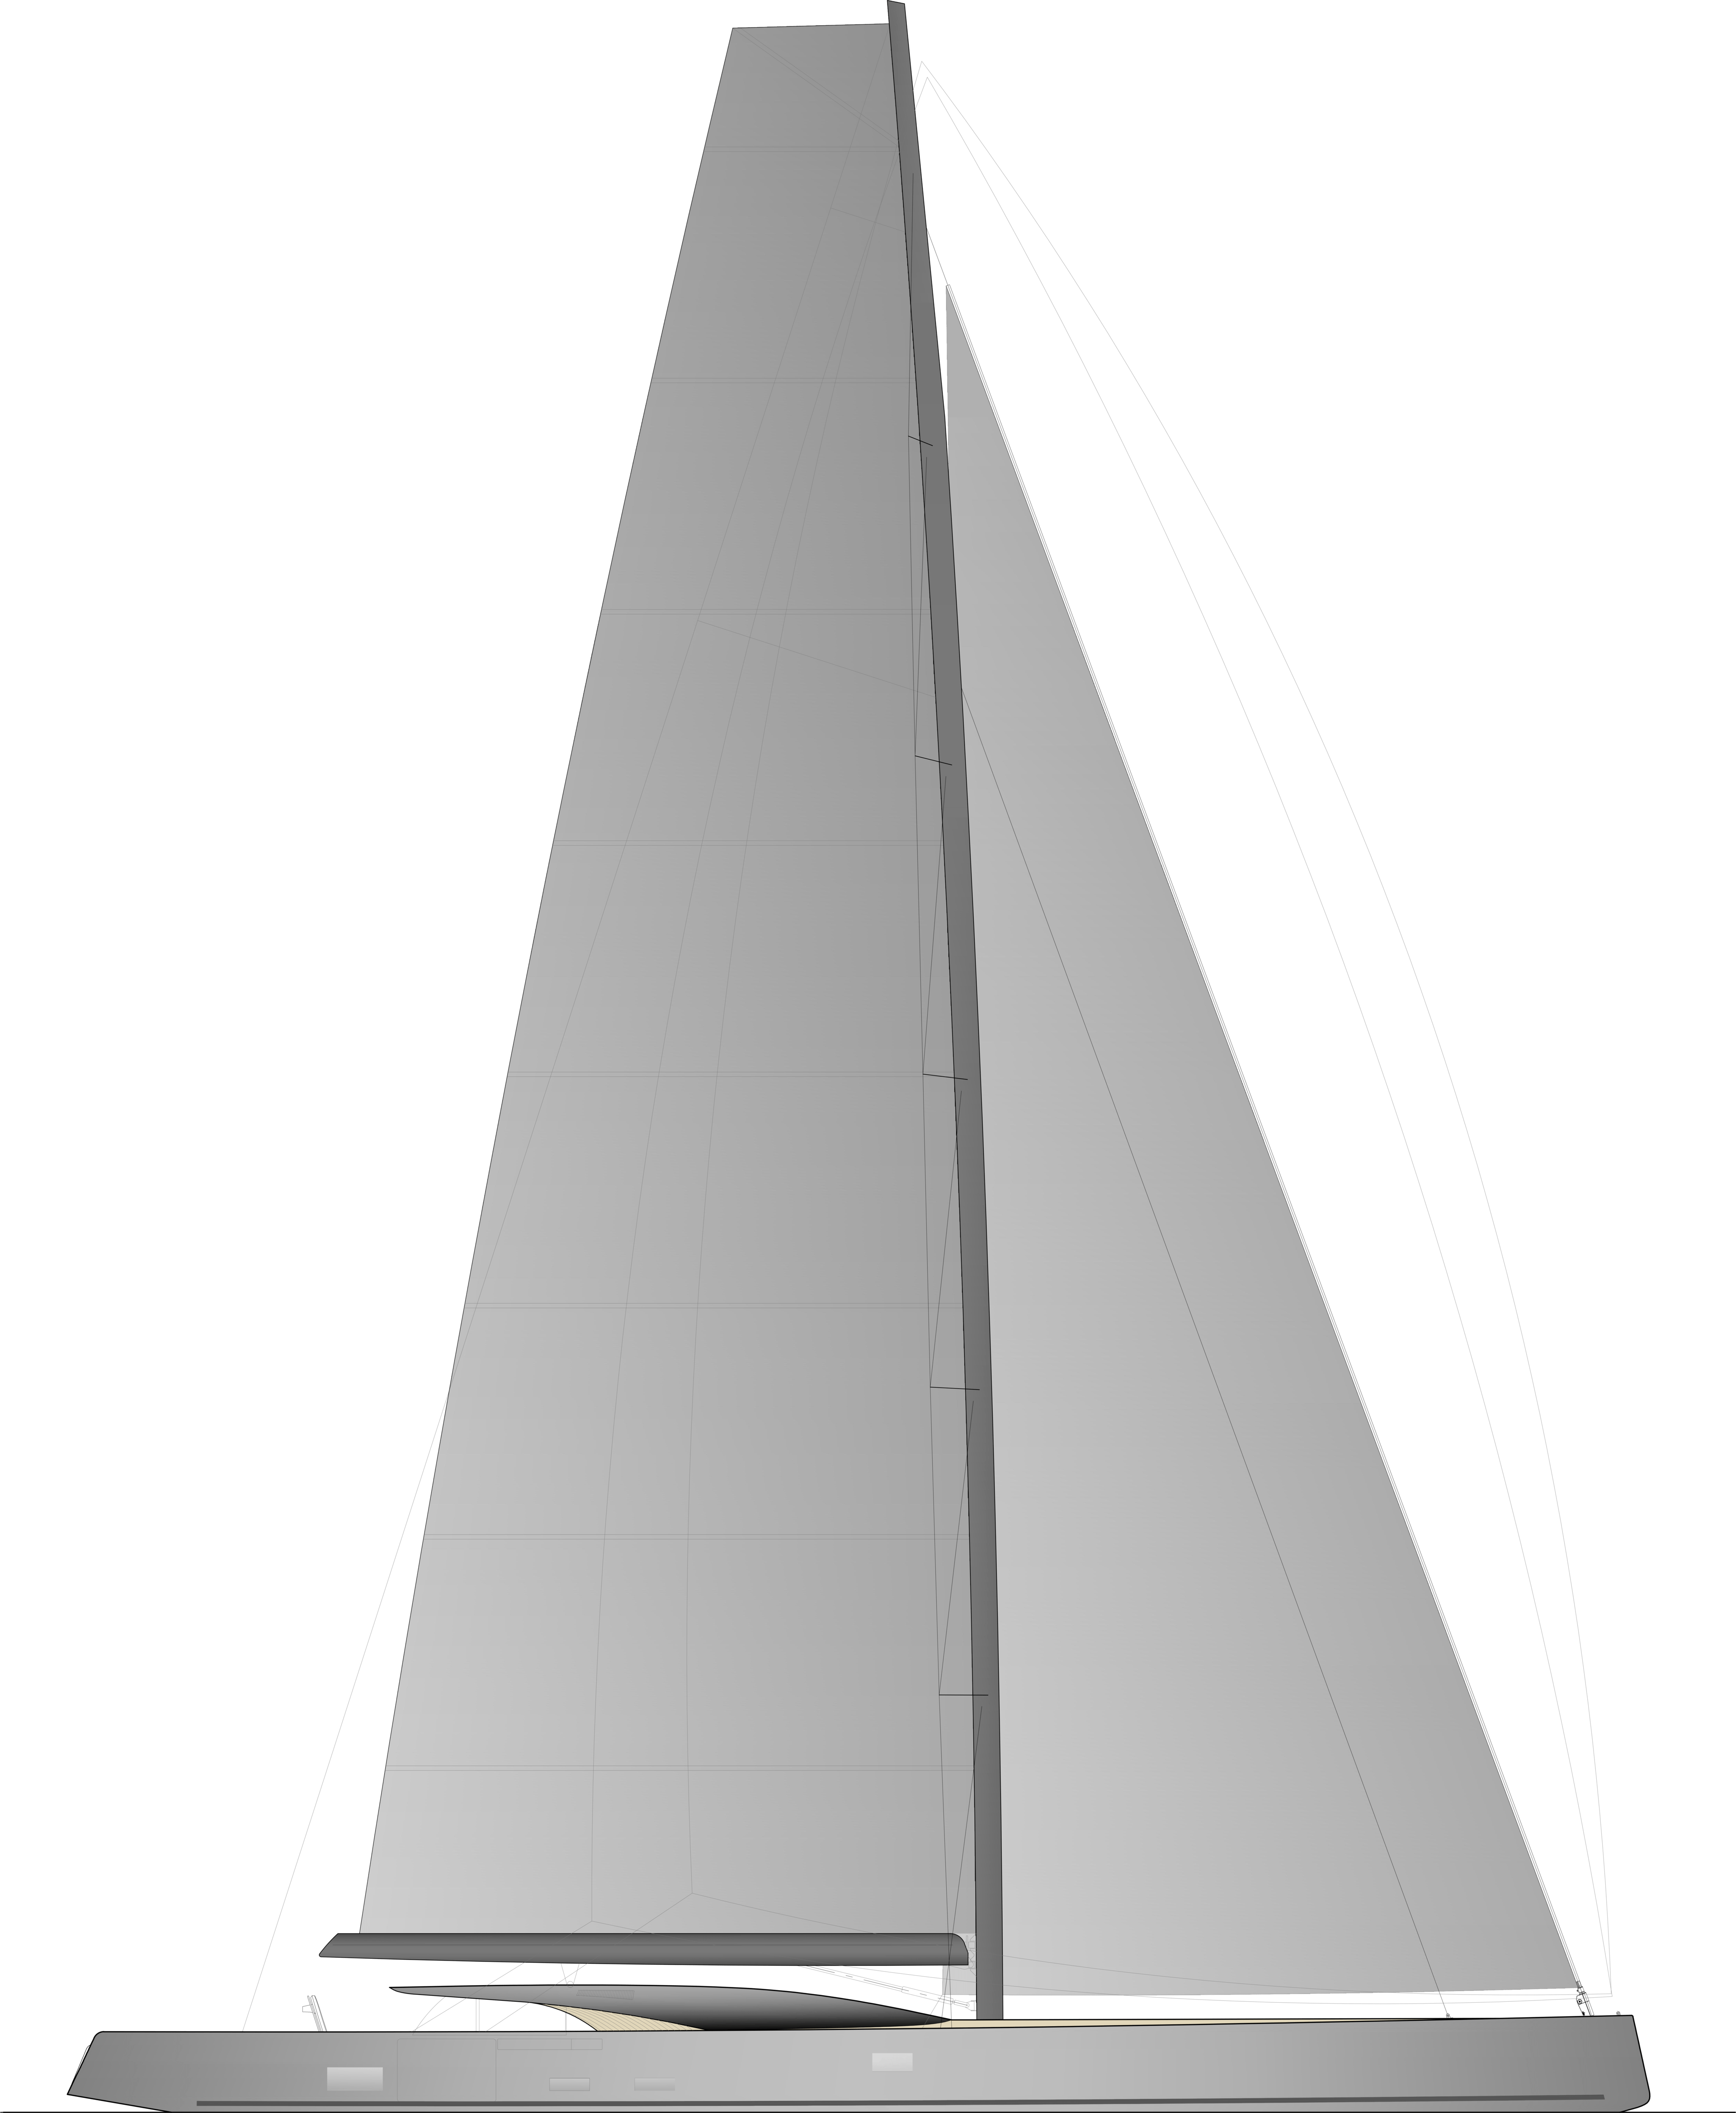 MMYD 011_ 51m_SP12_wide stern_publicity_2.png